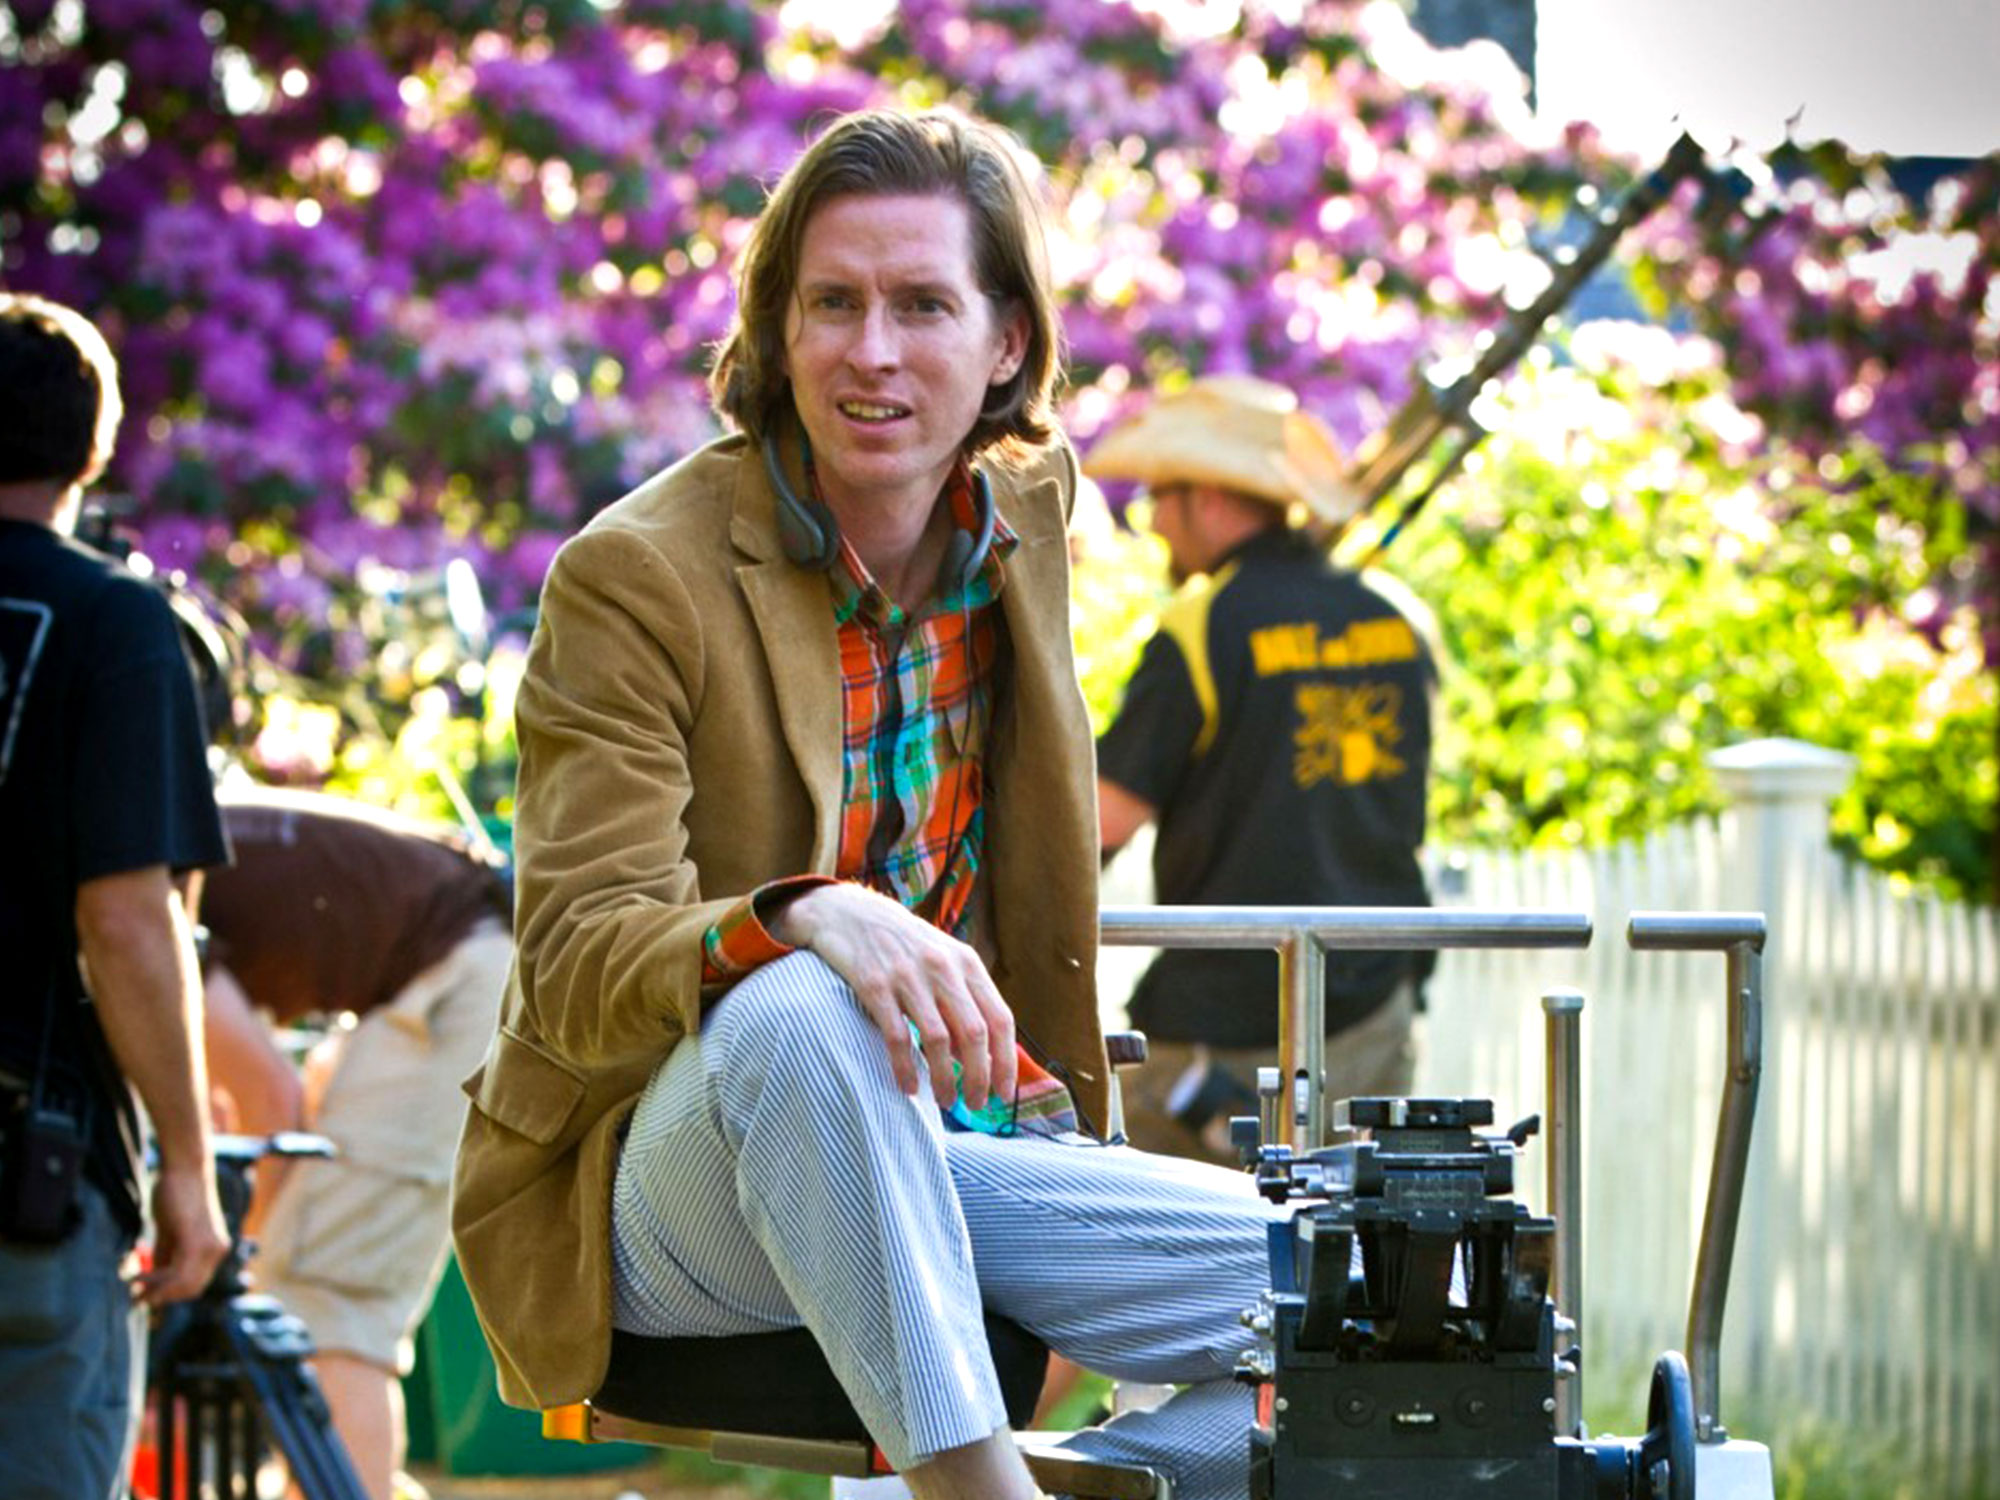 Everything we know about Wes Anderson's The French Dispatch